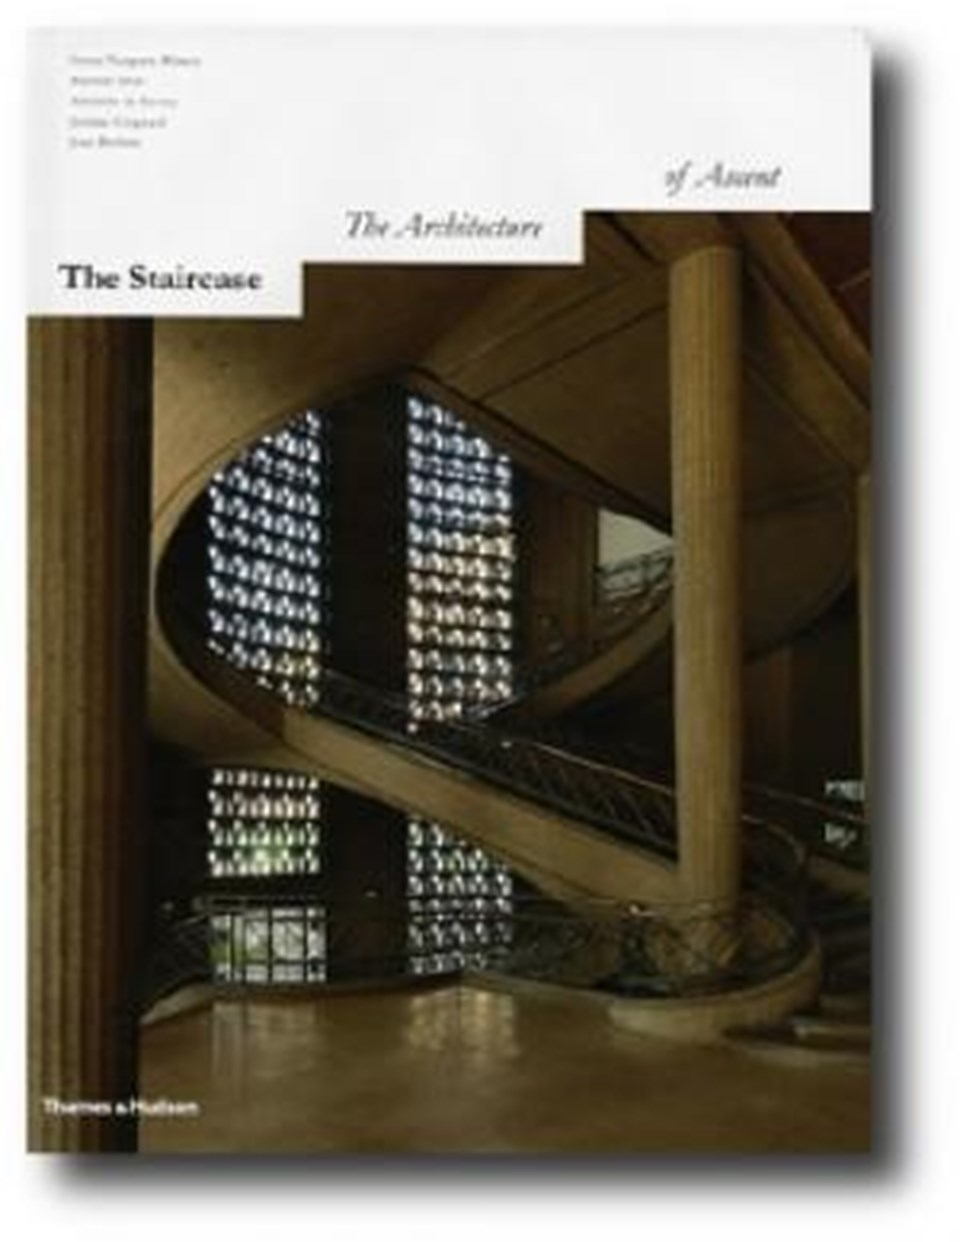 The Staircase - The Architecture of Ascent